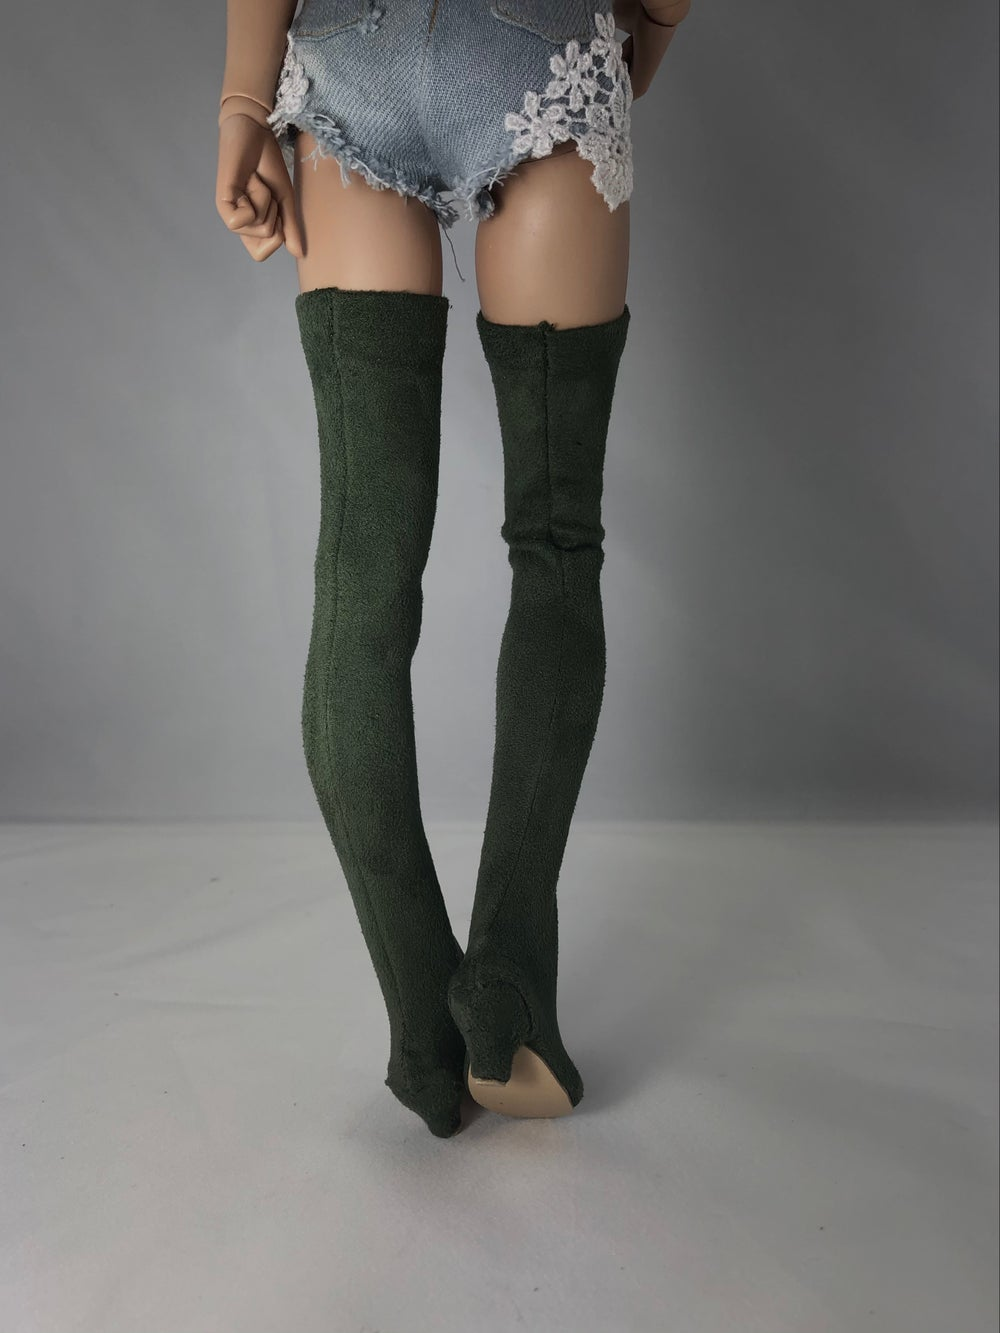 Olive Suede Thigh High Boots: Minifee